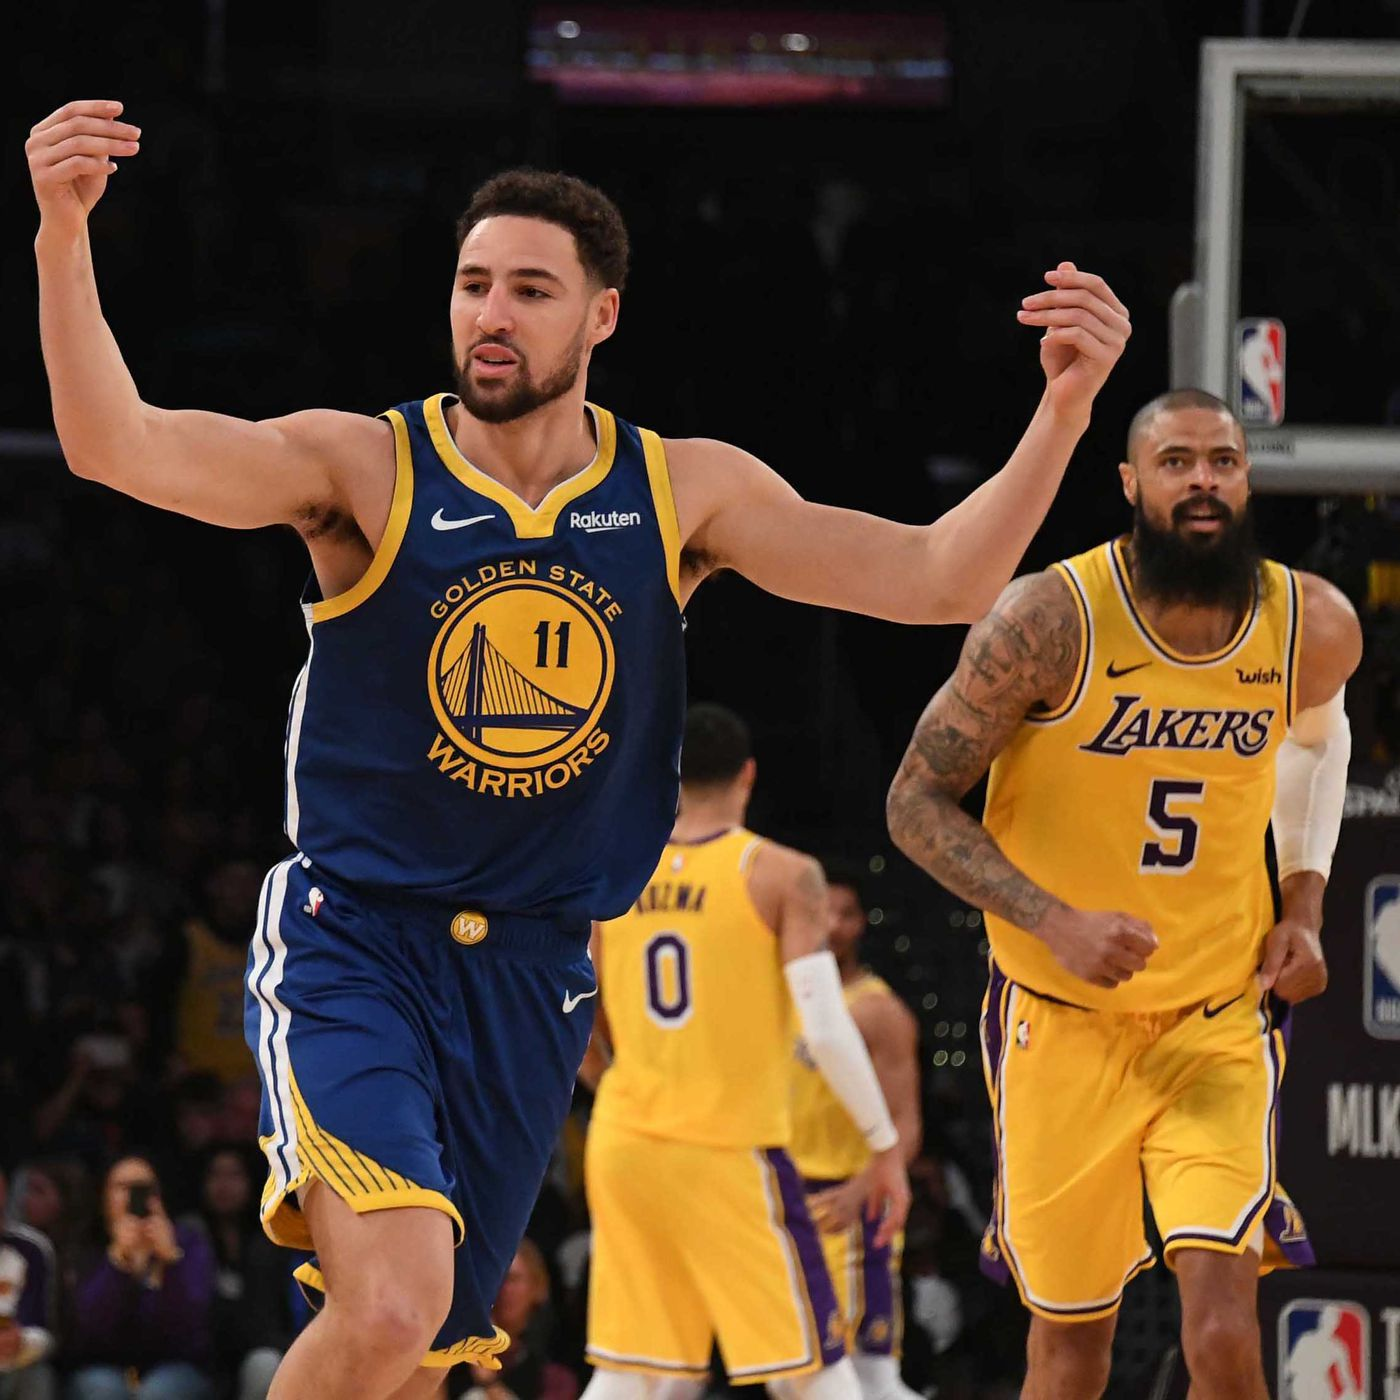 Final Score Thompson S 44 Points Lead Warriors 130 111 Win Vs Lakers Golden State Of Mind